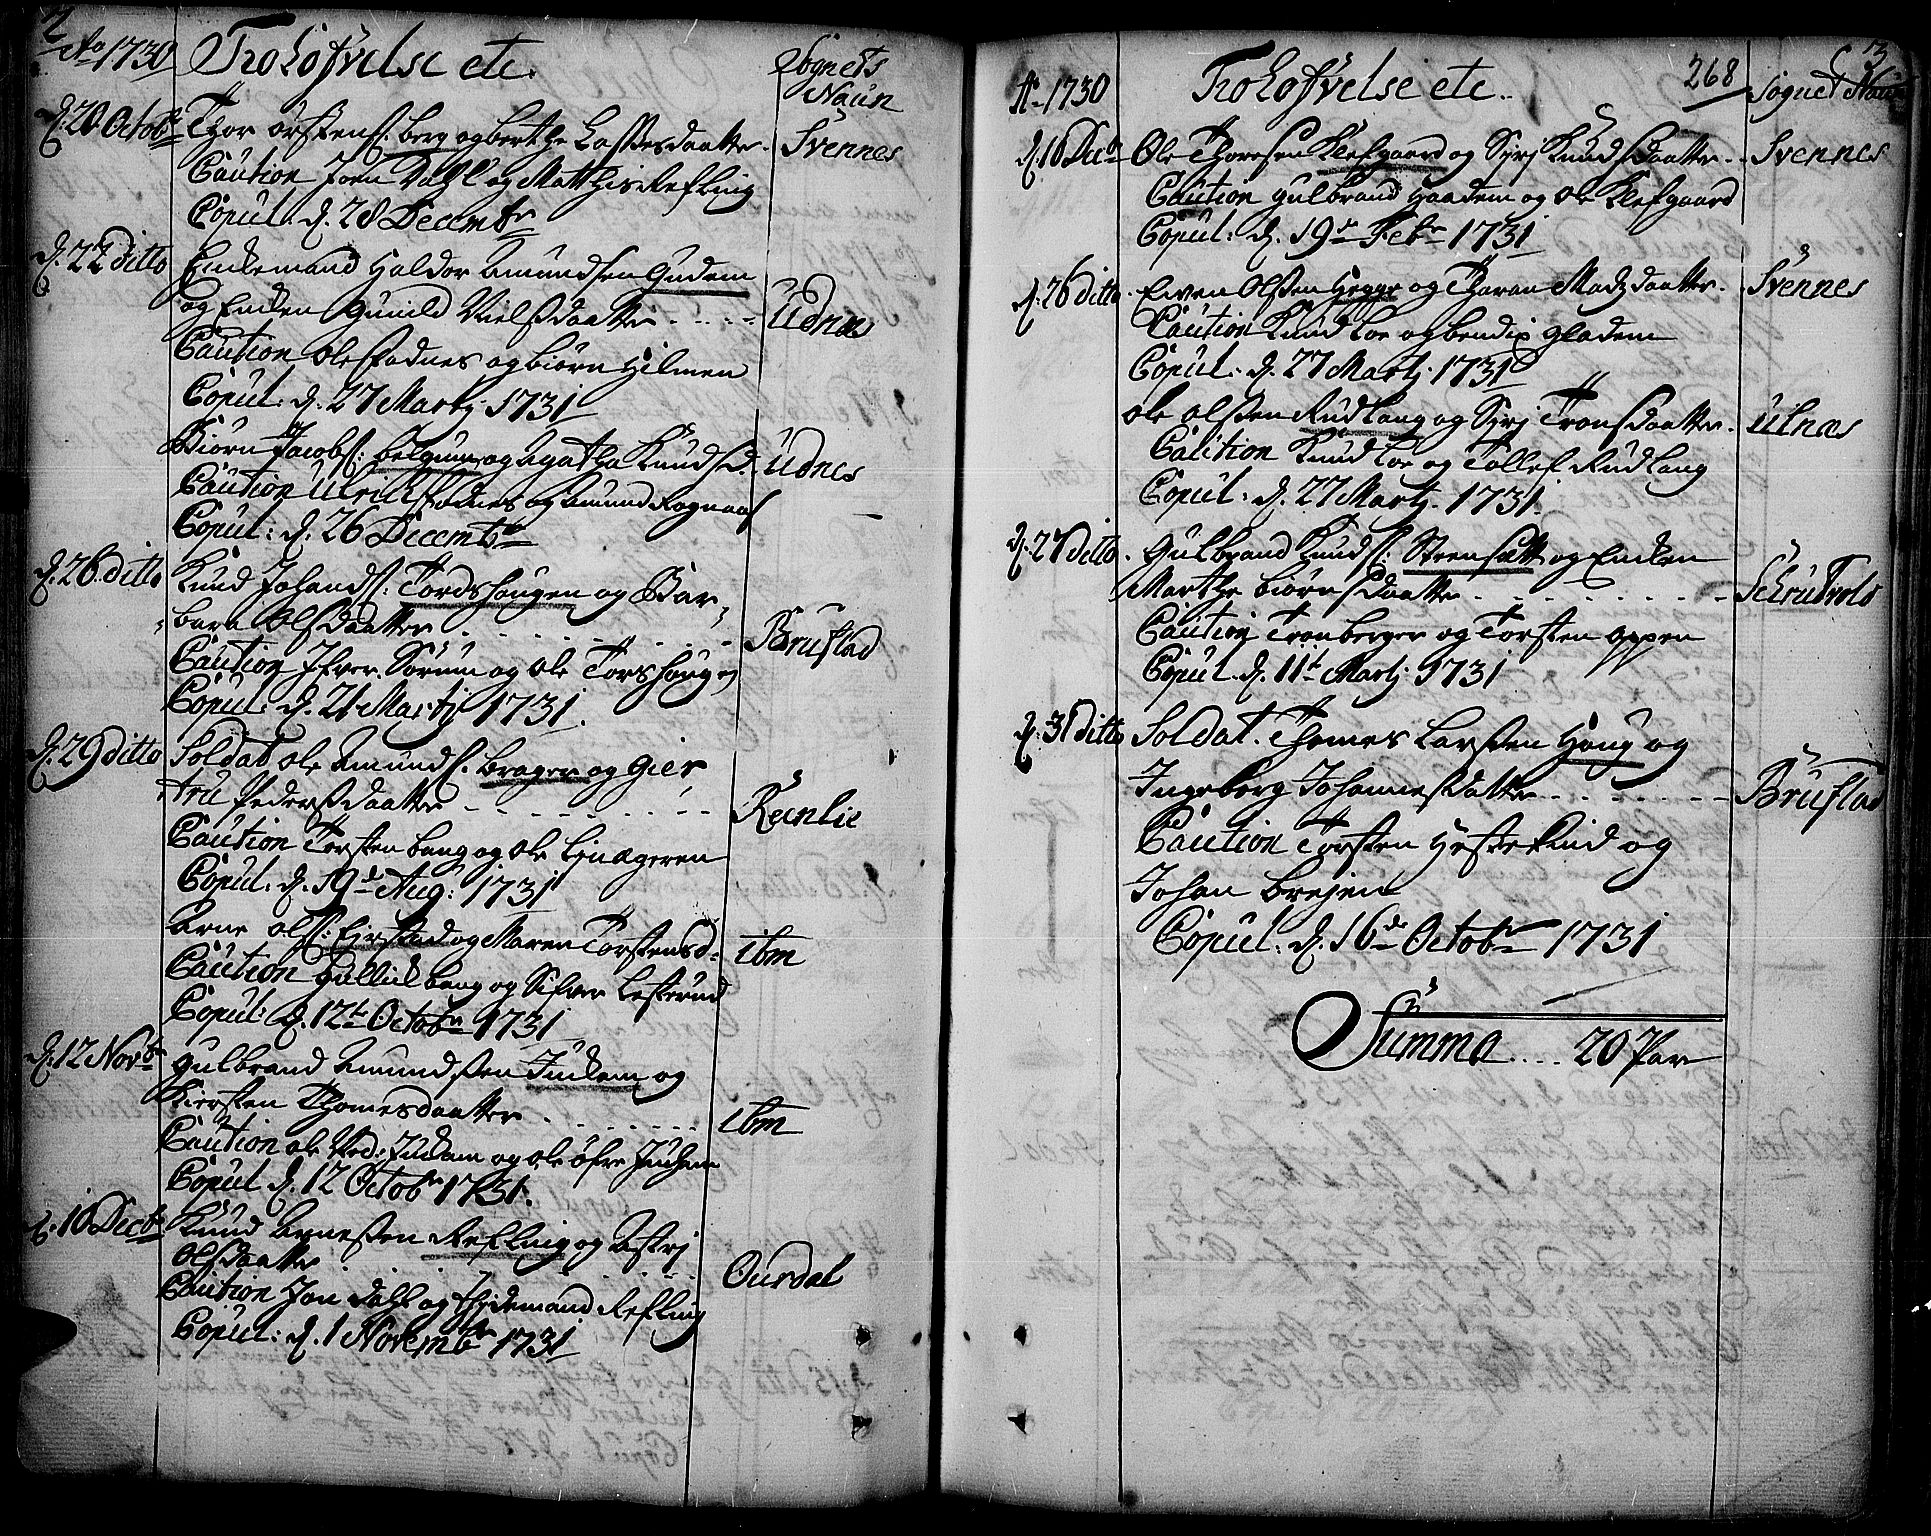 SAH, Aurdal prestekontor, Parish register (official) no. 4, 1730-1762, p. 2-3